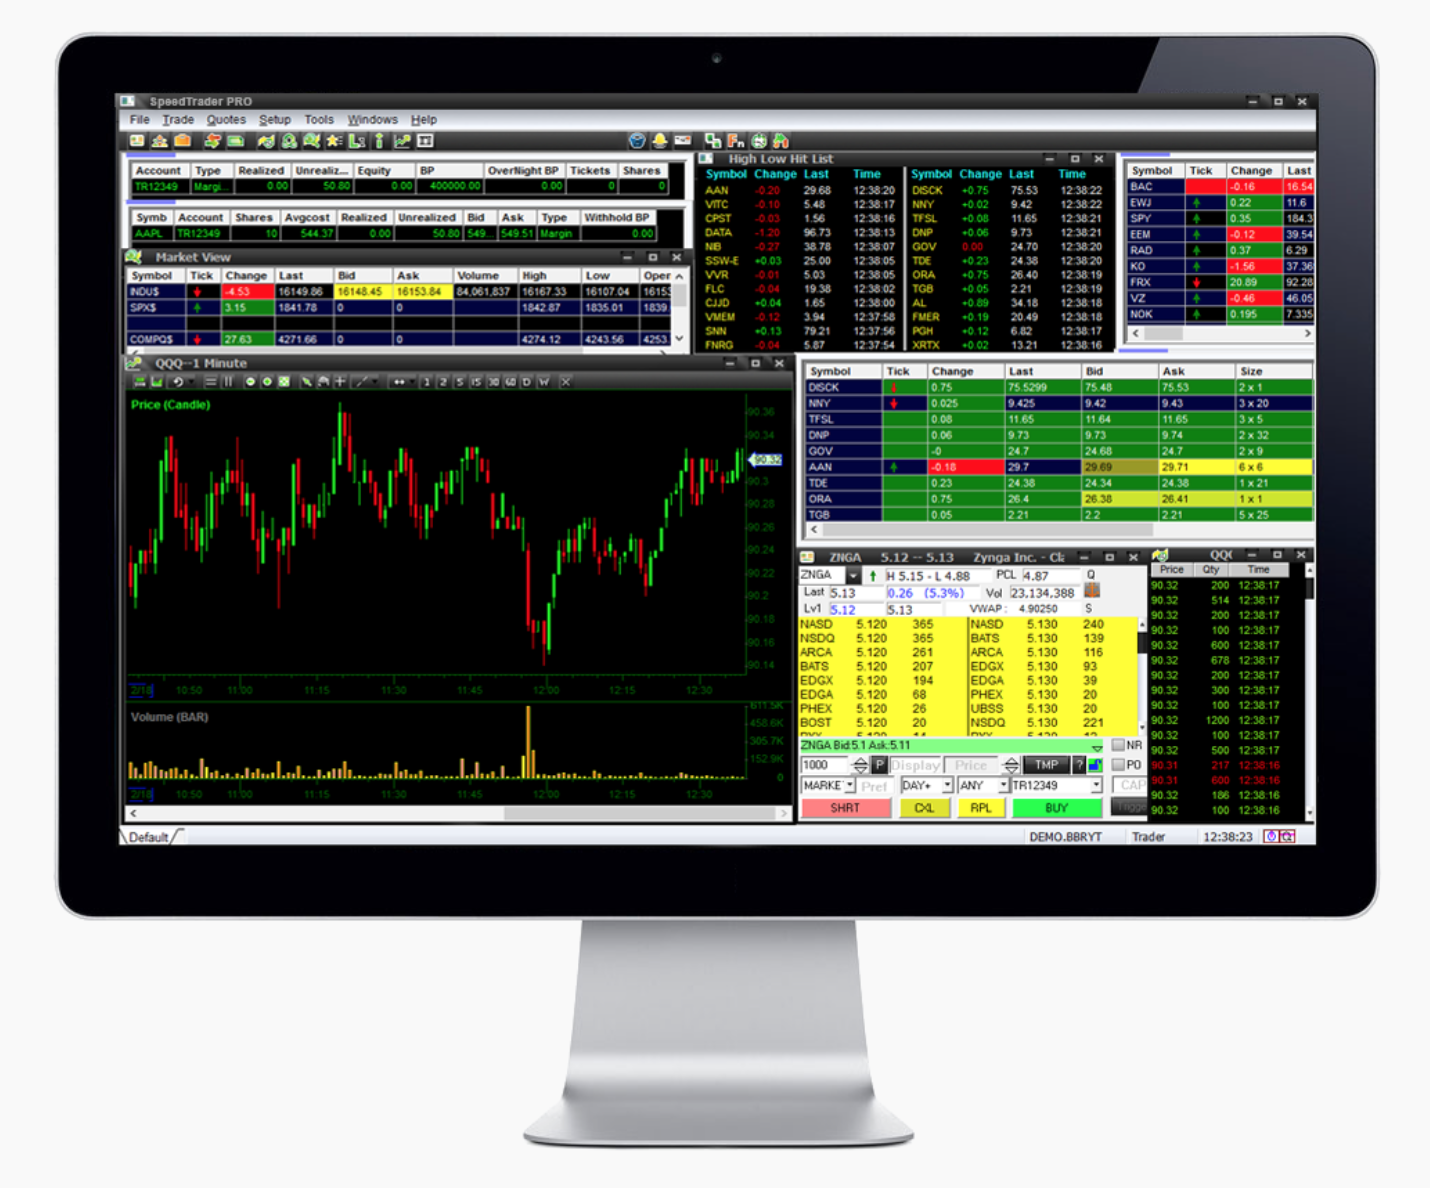 How to use SpeedTrader or SureTrader on a Mac | SwingTraderZ